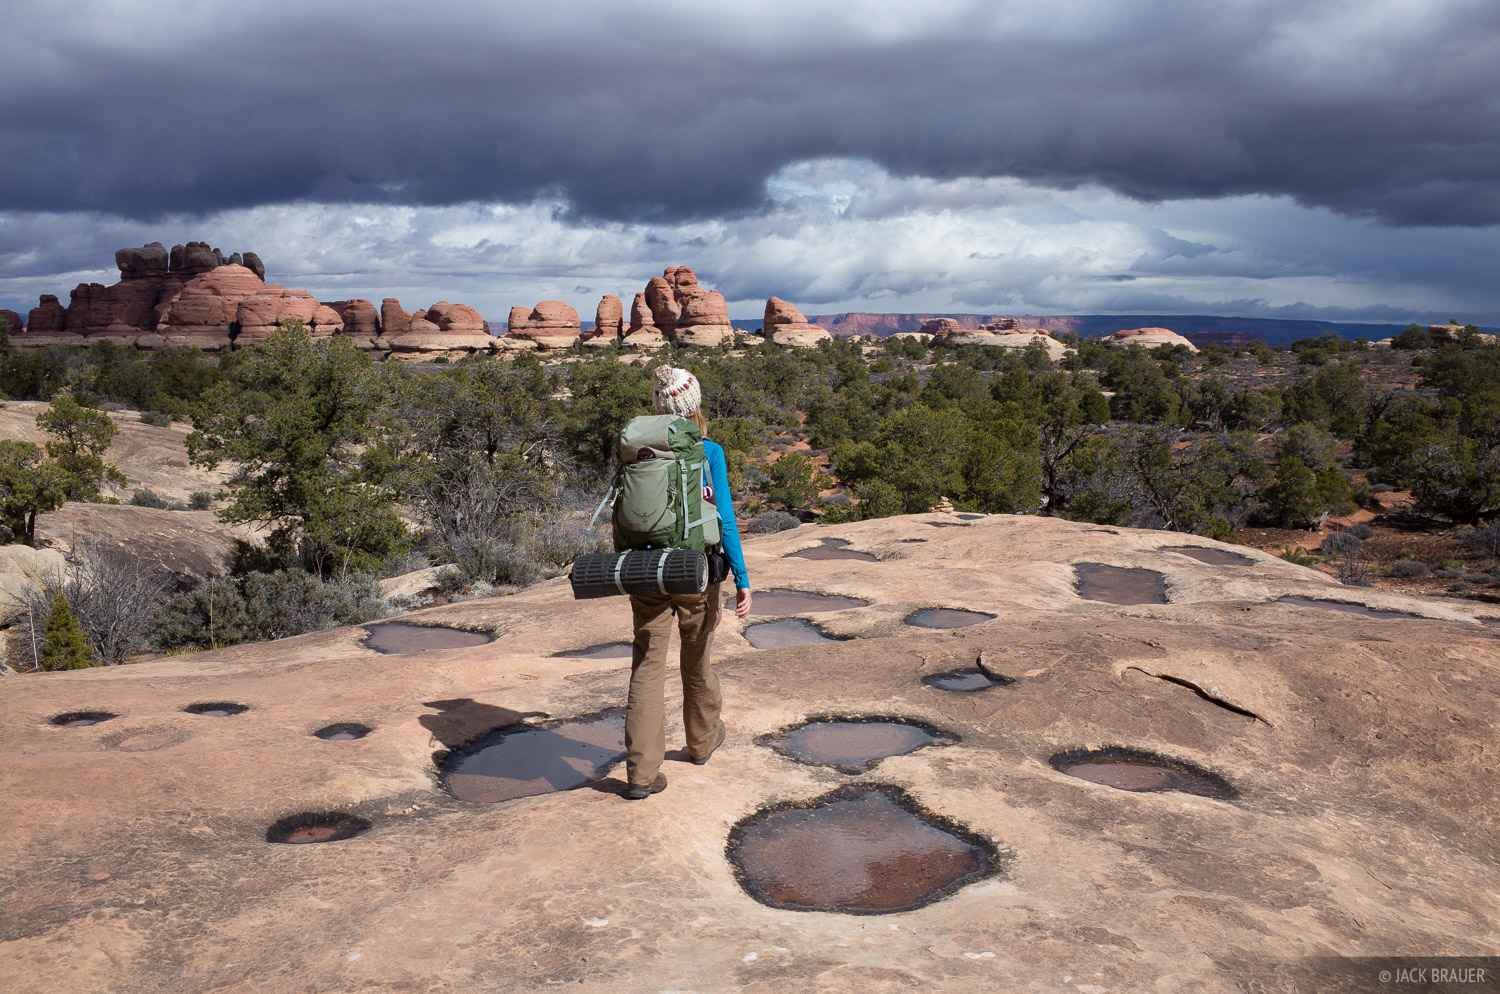 Canyonlands National Park, Needles District, Utah, photo